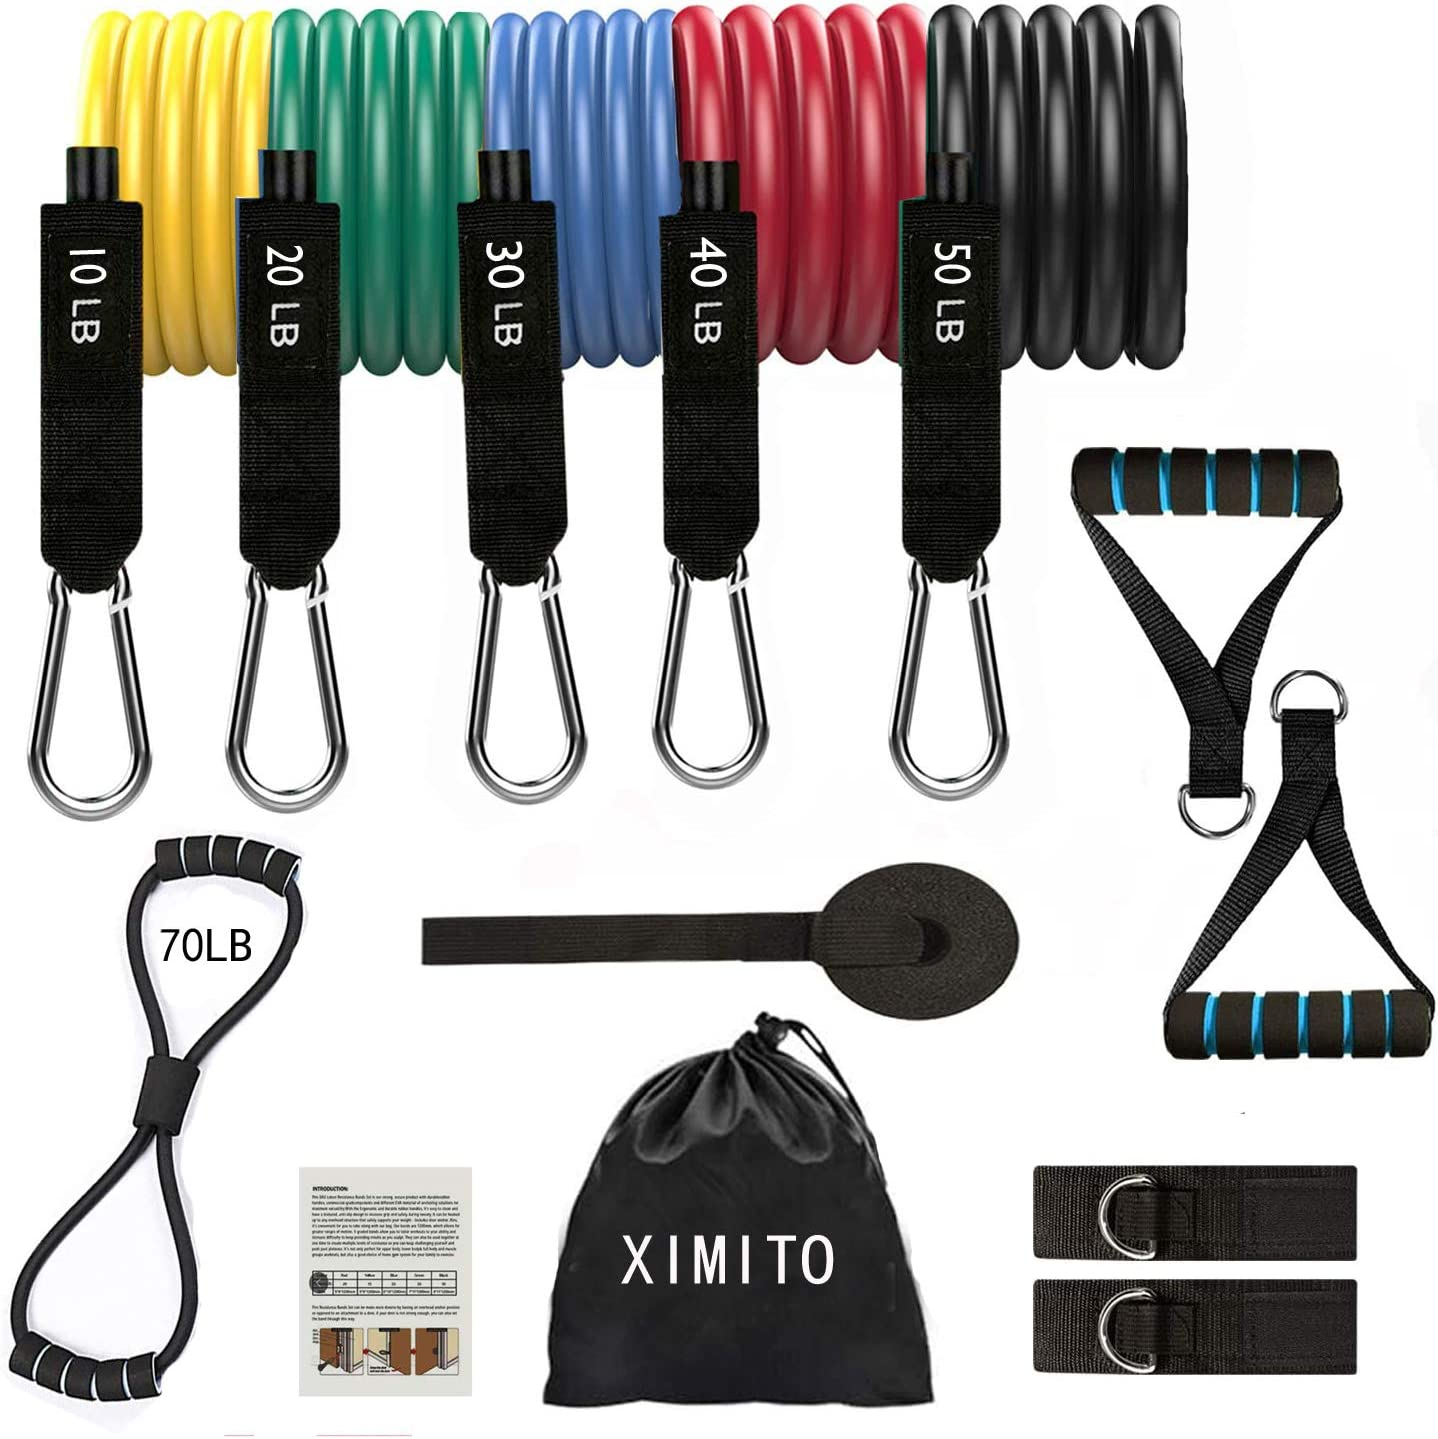 YOLOK Resistance Bands Set 13PCS Exercise Band for Working Out Up to 150 lbs, with 5 Stackable Fitness Tubes, Handles, Door Anchor, Ankle Straps and Workout Guide,Exercise Towel,Organizer Bag